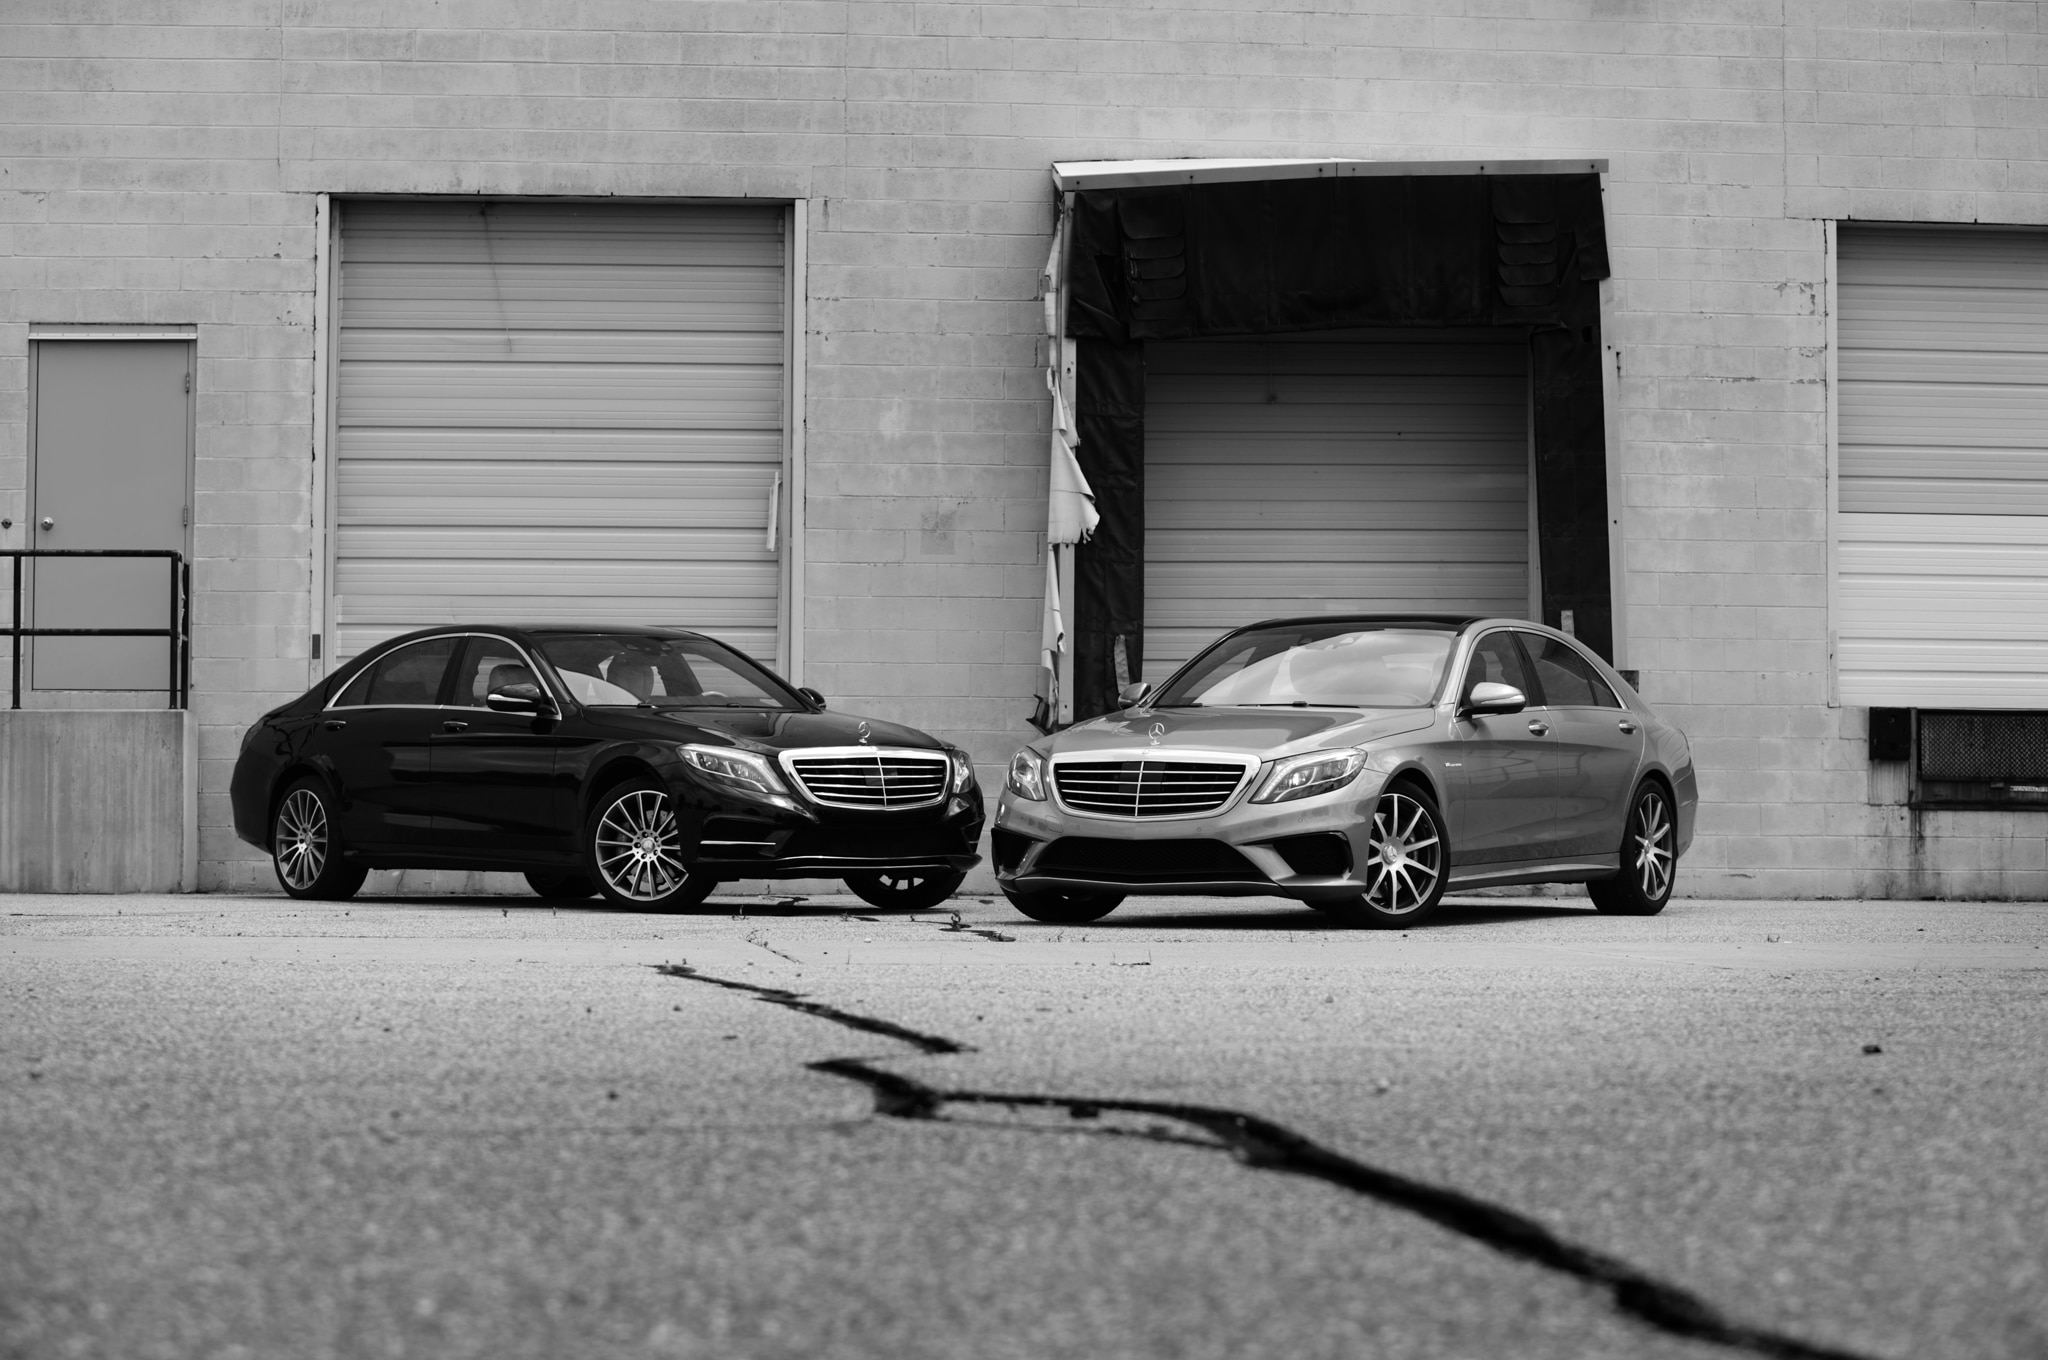 2014 Mercedes Benz S550 And S63 Amg Around The Block Clk550 Fuse Box Show More